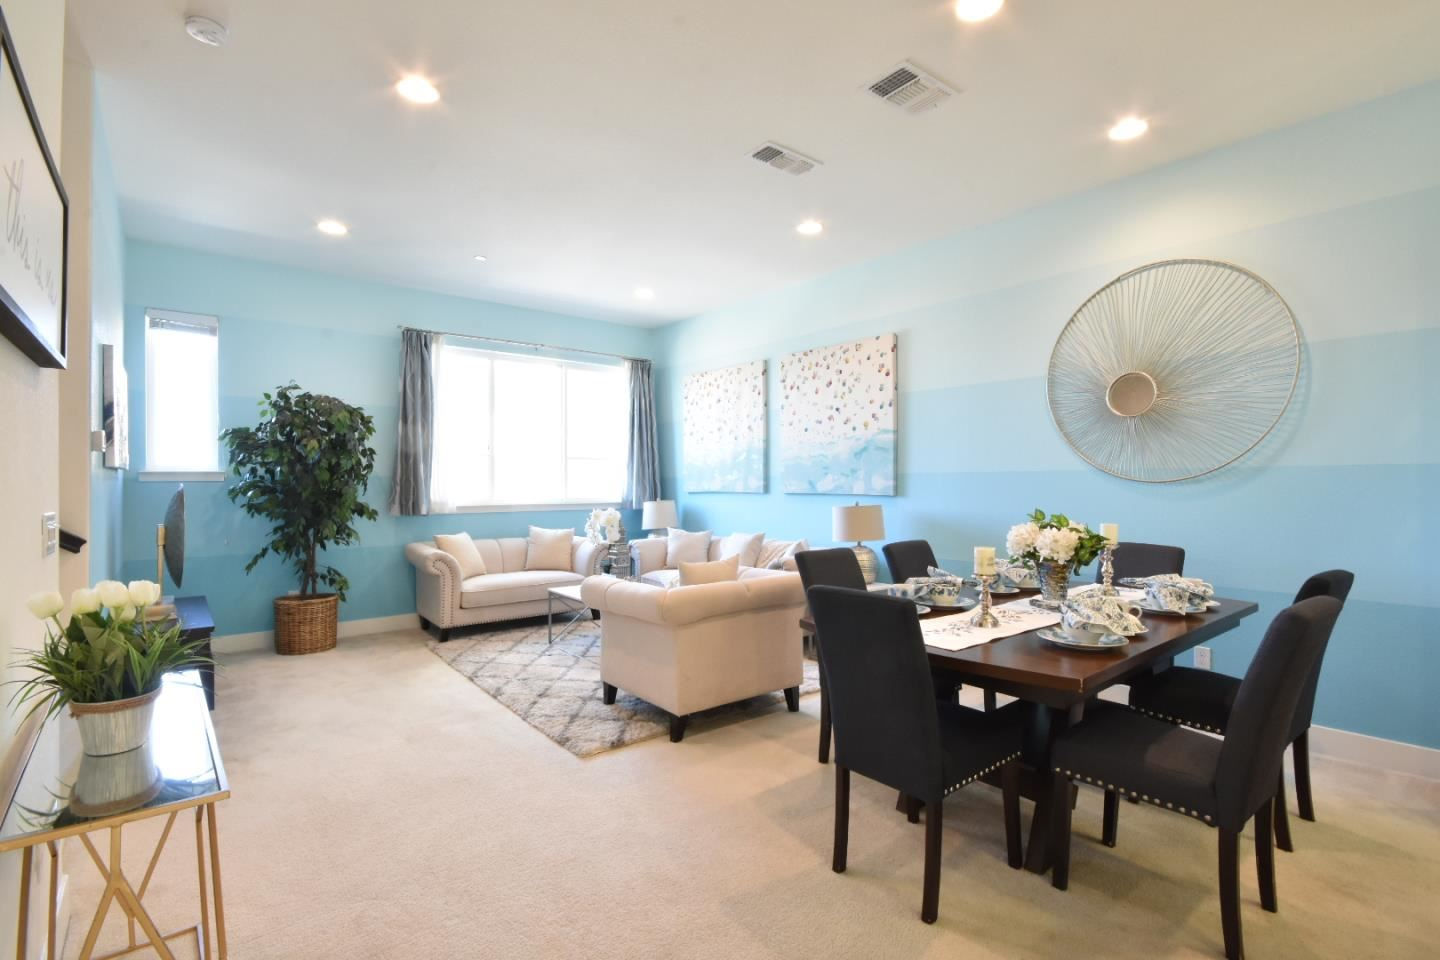 Photo for 1978 Pace WAY, MILPITAS, CA 95035 (MLS # ML81835632)